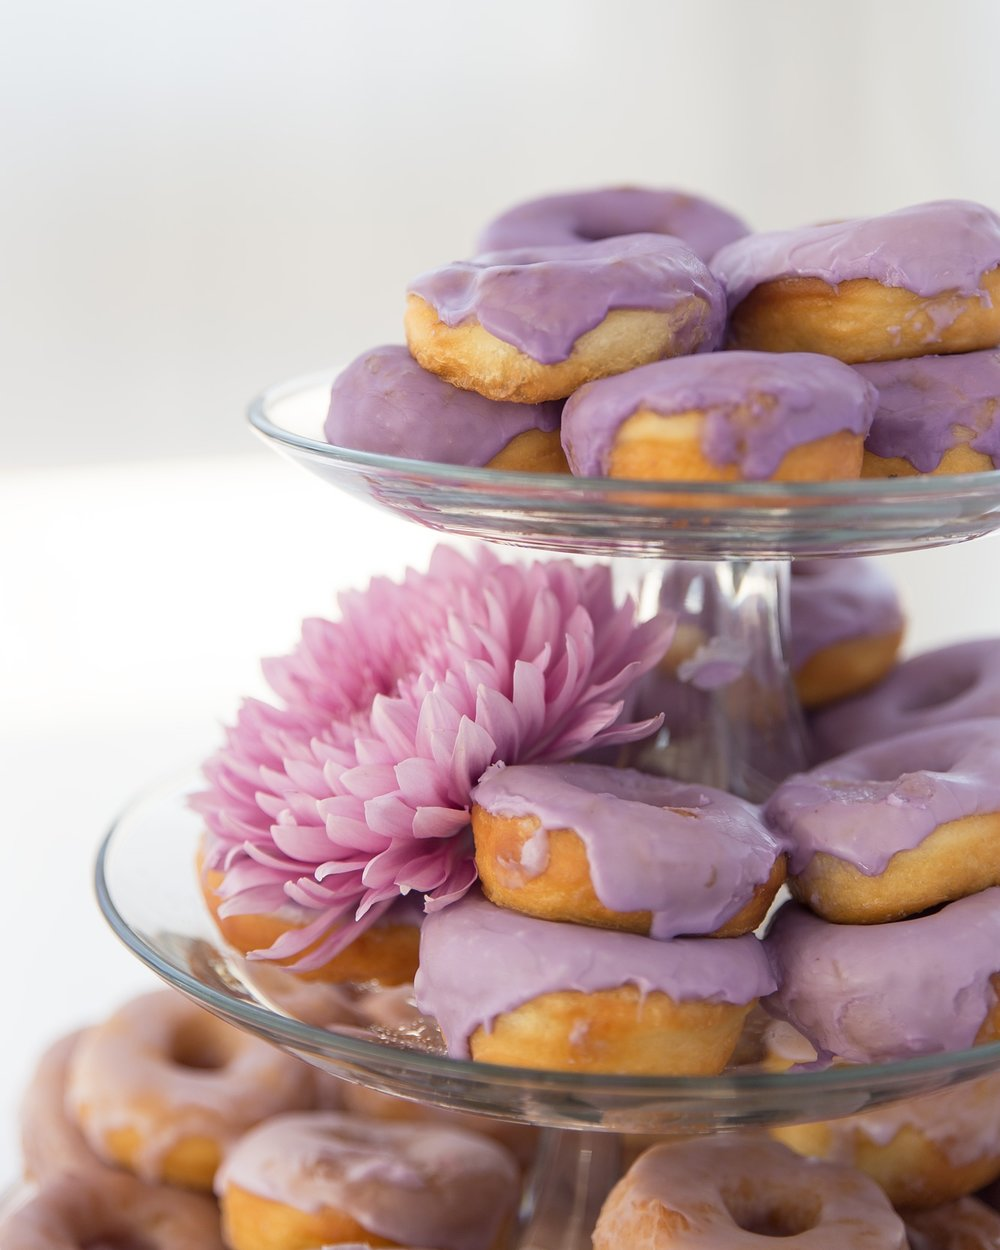 Close up product food photography shot of donuts (doughnuts) with purple icing and a pink flower.